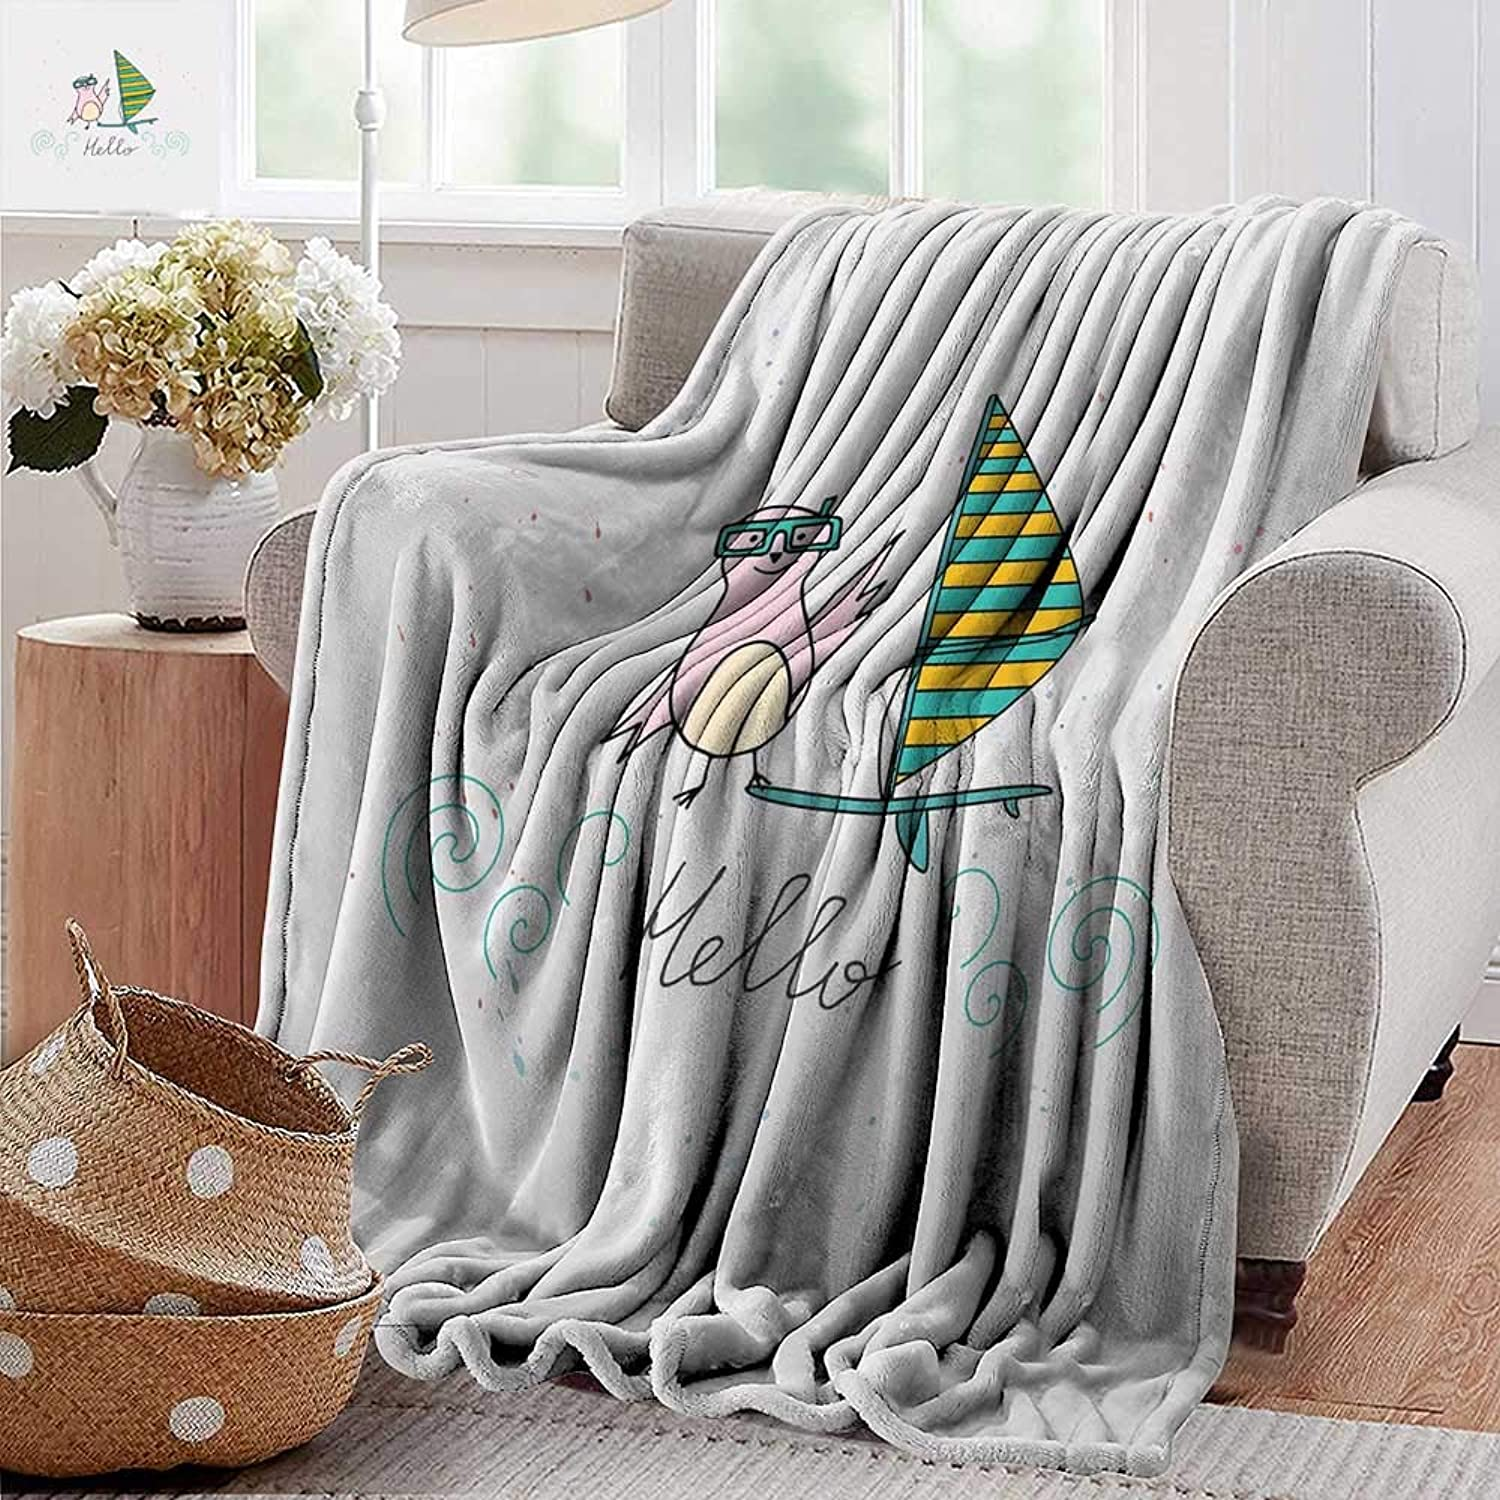 PearlRolan Swaddle Blanket,Hello,Summer Inspiration with Hand Drawn Bird and Windsurf Board Cartoon Style,Mint Green Yellow Pink,Lightweight Extra Soft Skin Fabric,Not Allergic 50 x70